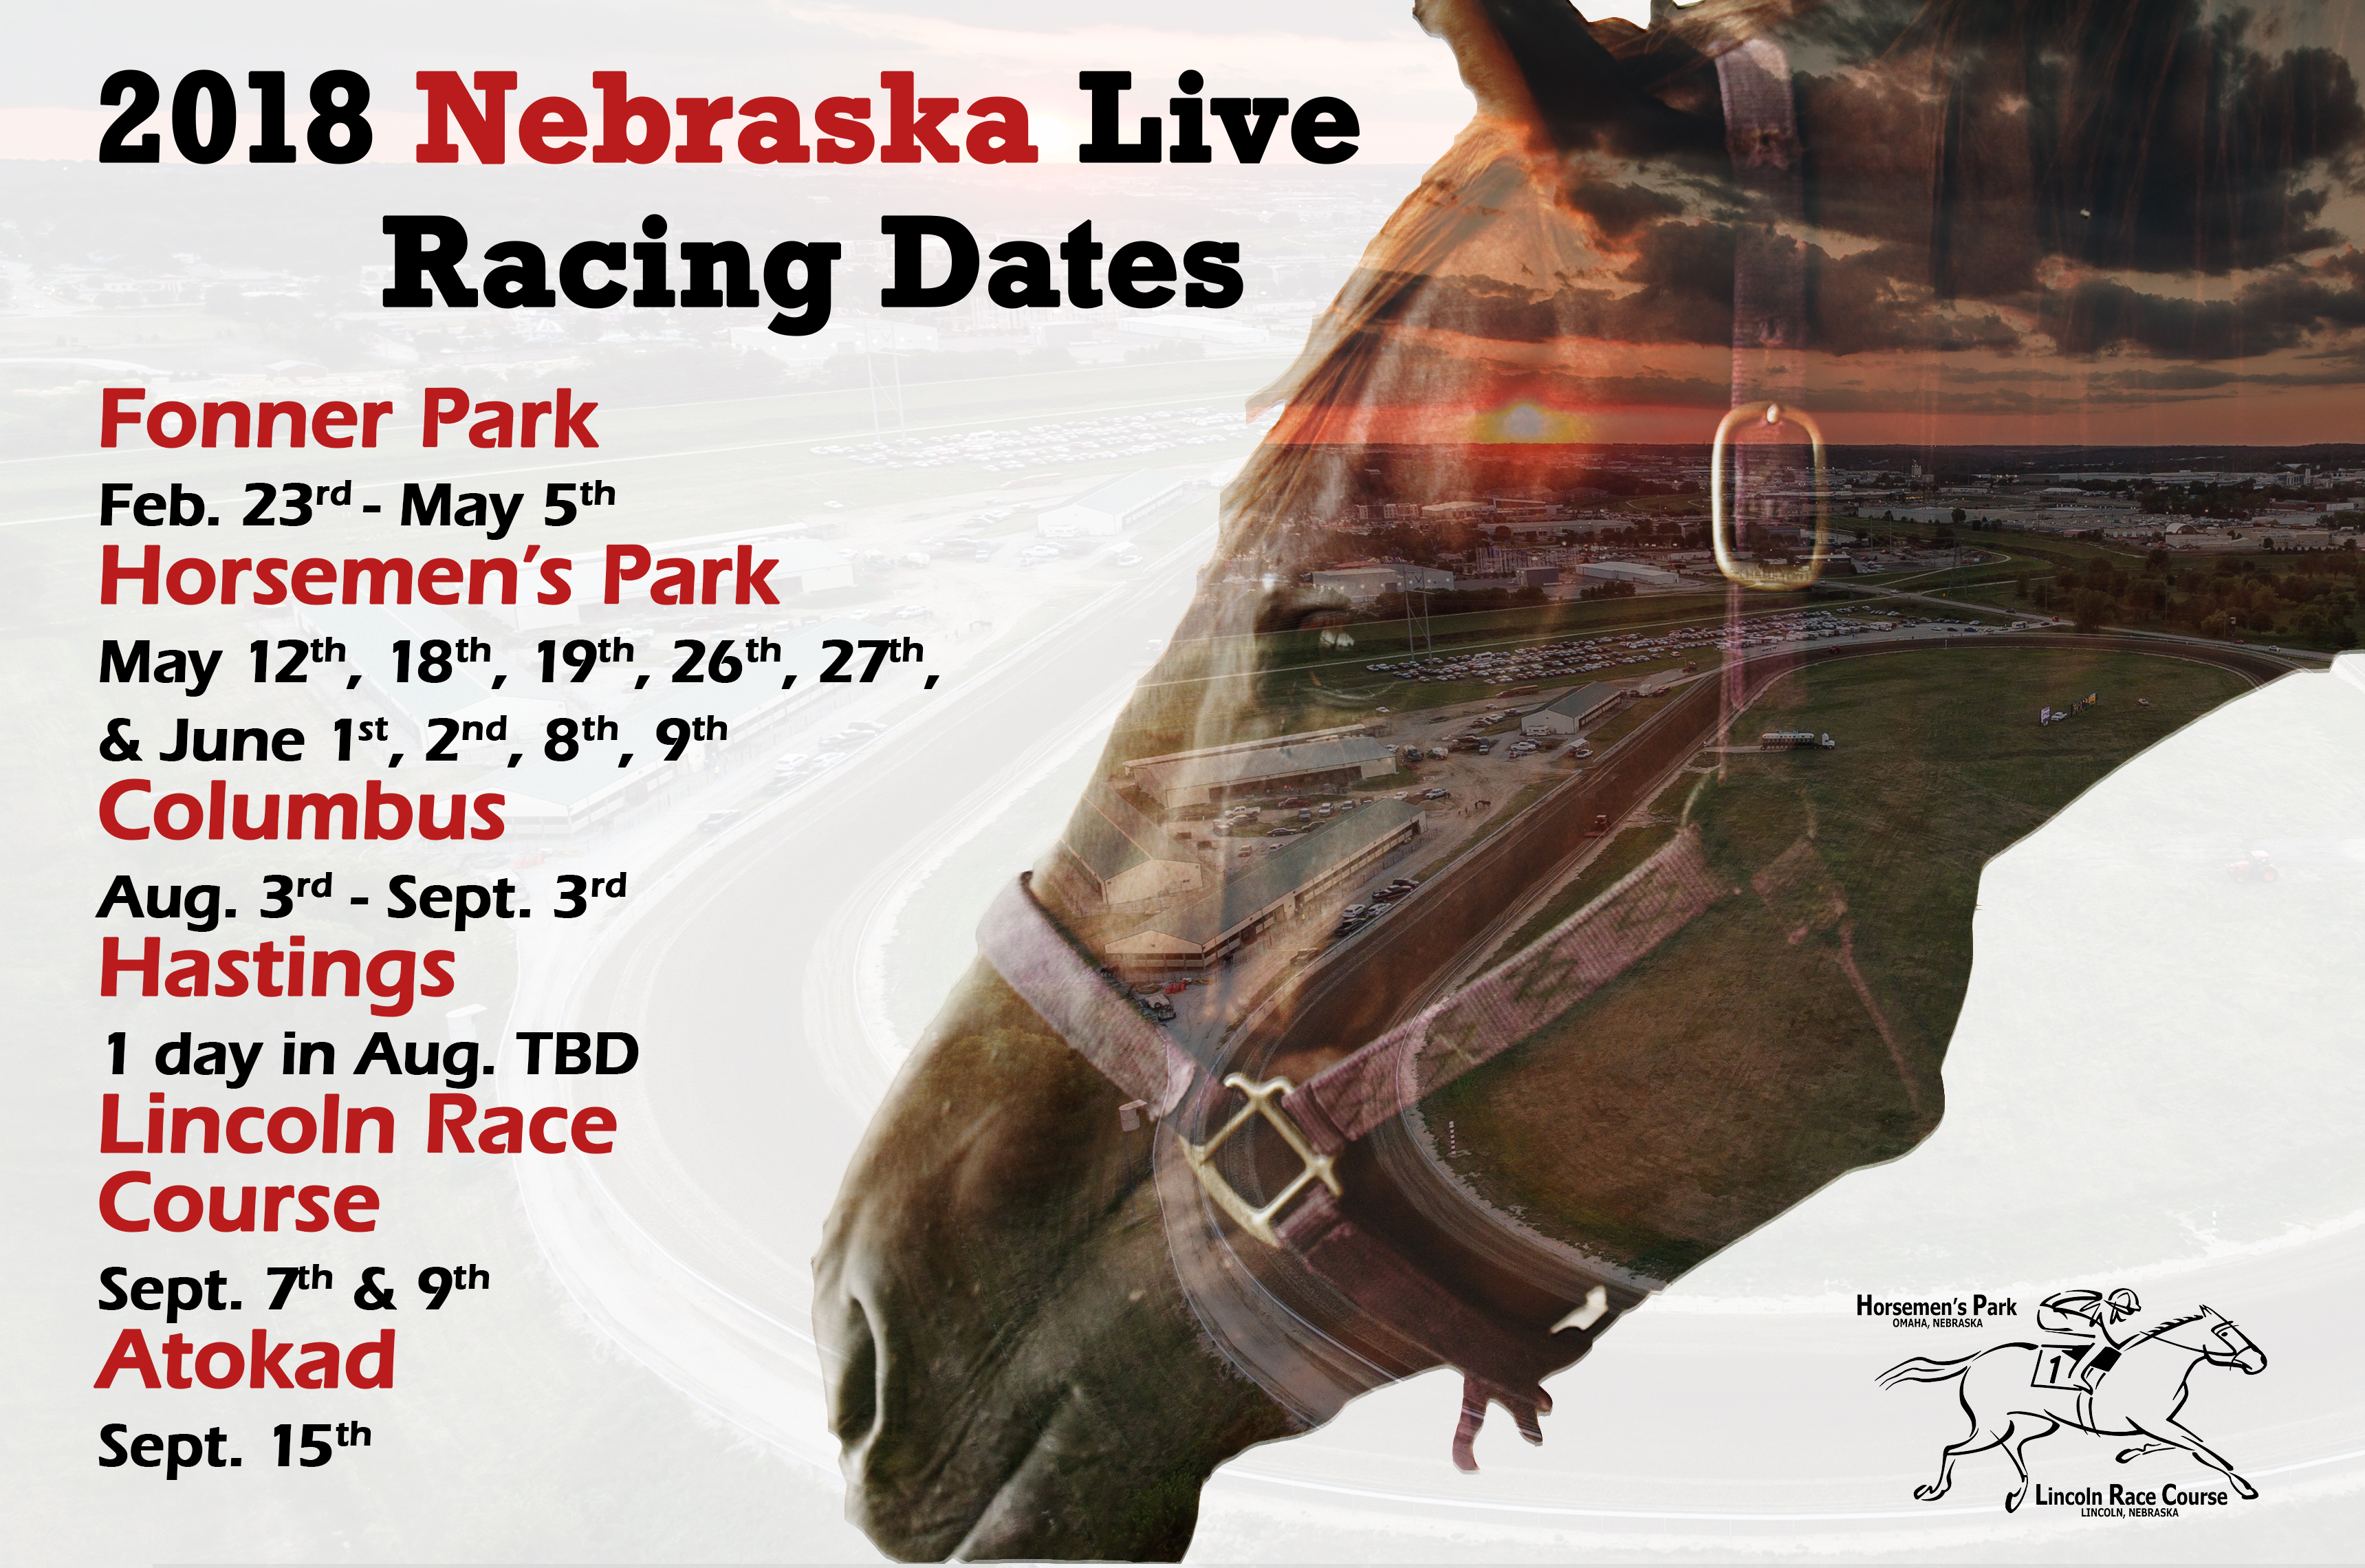 2018 nebraska Live racing dates landscape.jpg